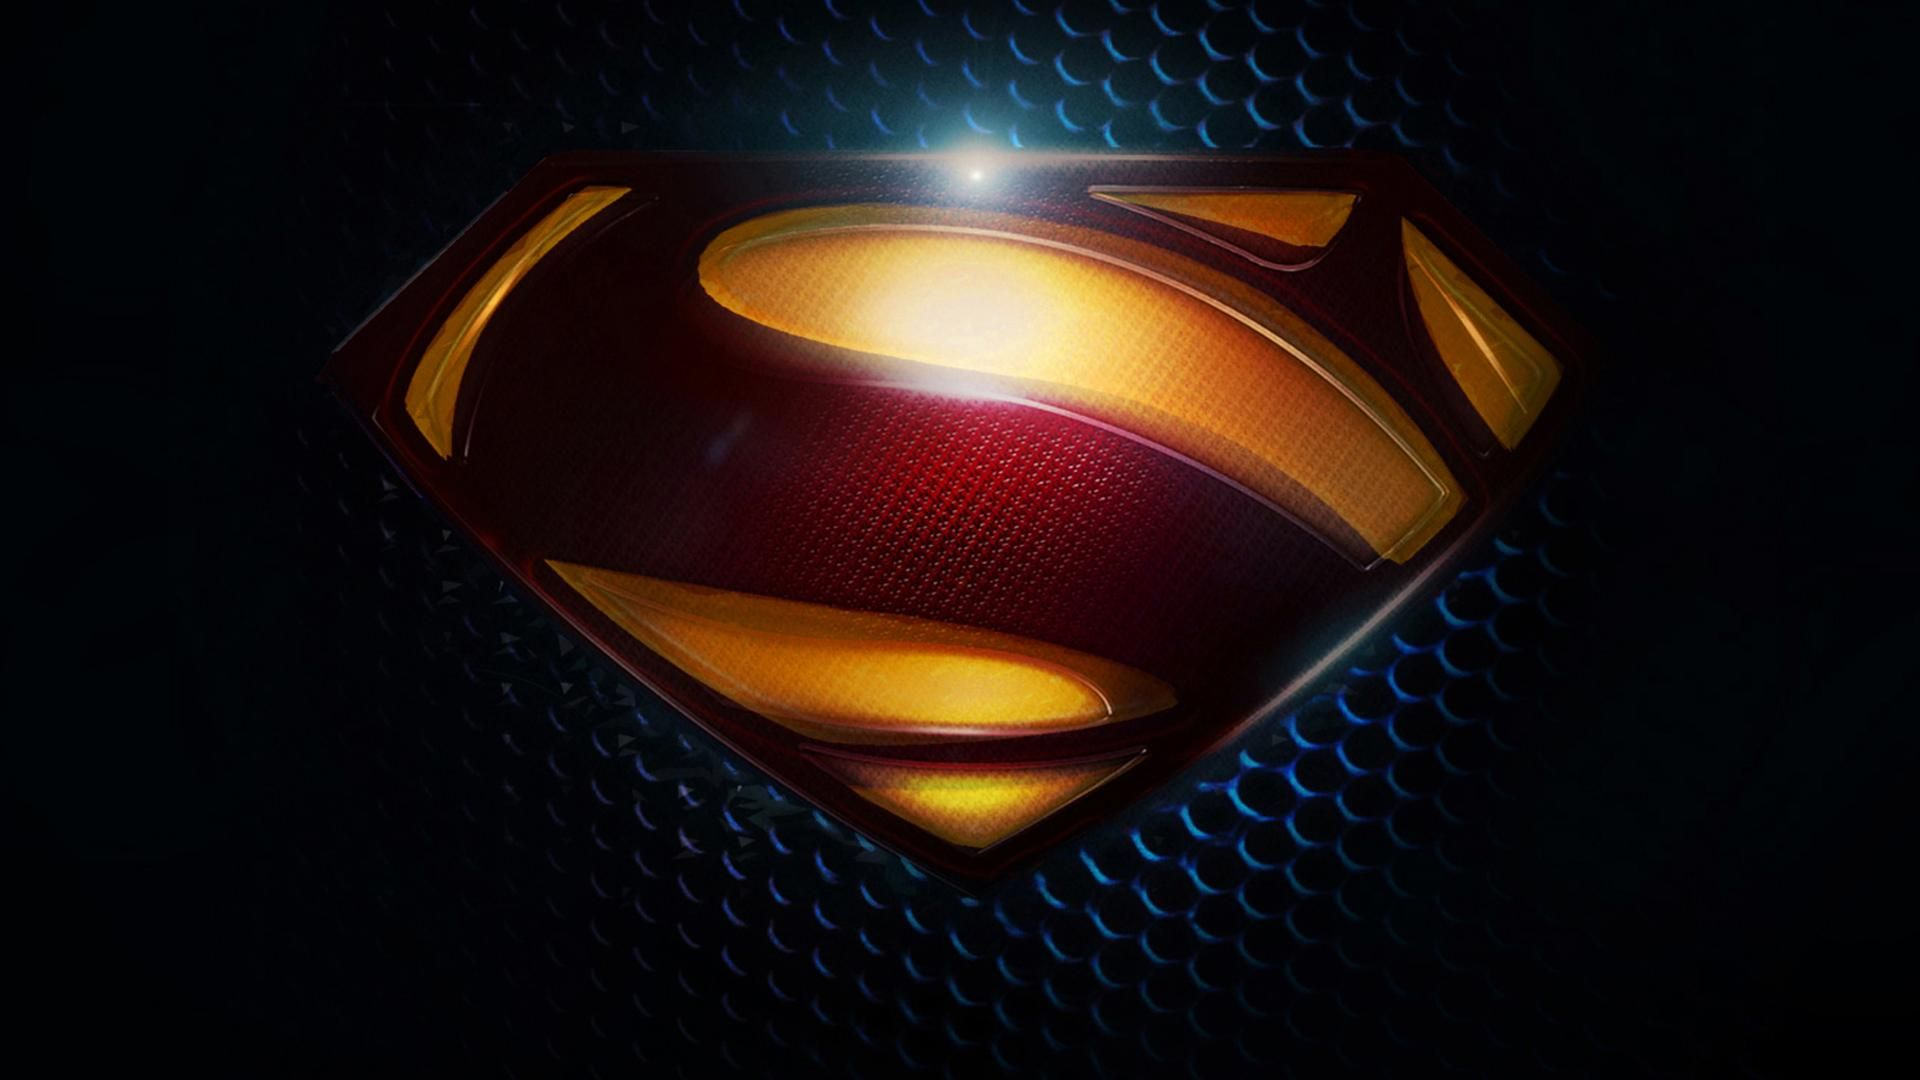 Superman the man of steel 2013 logo hd wallpaper - Man Of Steel Official Movie Teaser 2 2013 Hd Superman Movie Russell Crowe Vo